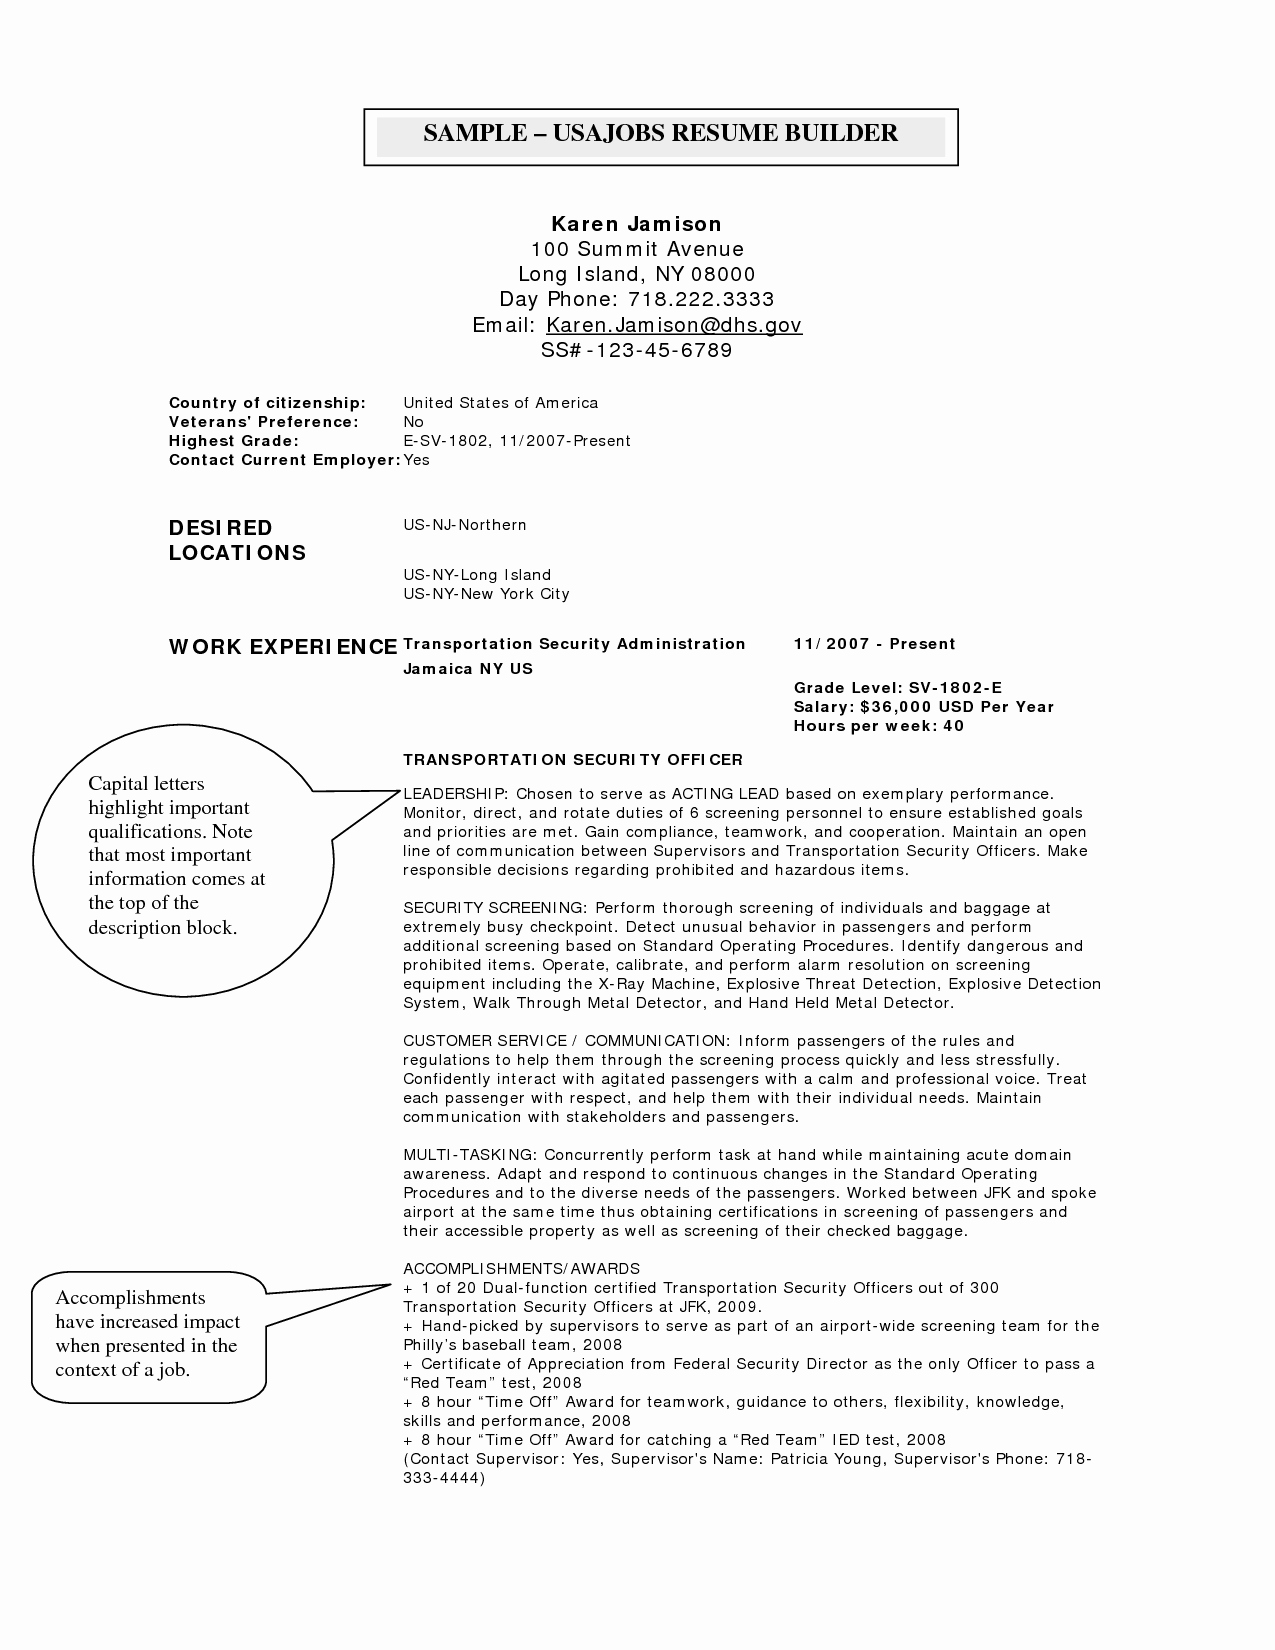 Building A Resume Usa Jobs Cover Letter Dentist Federal